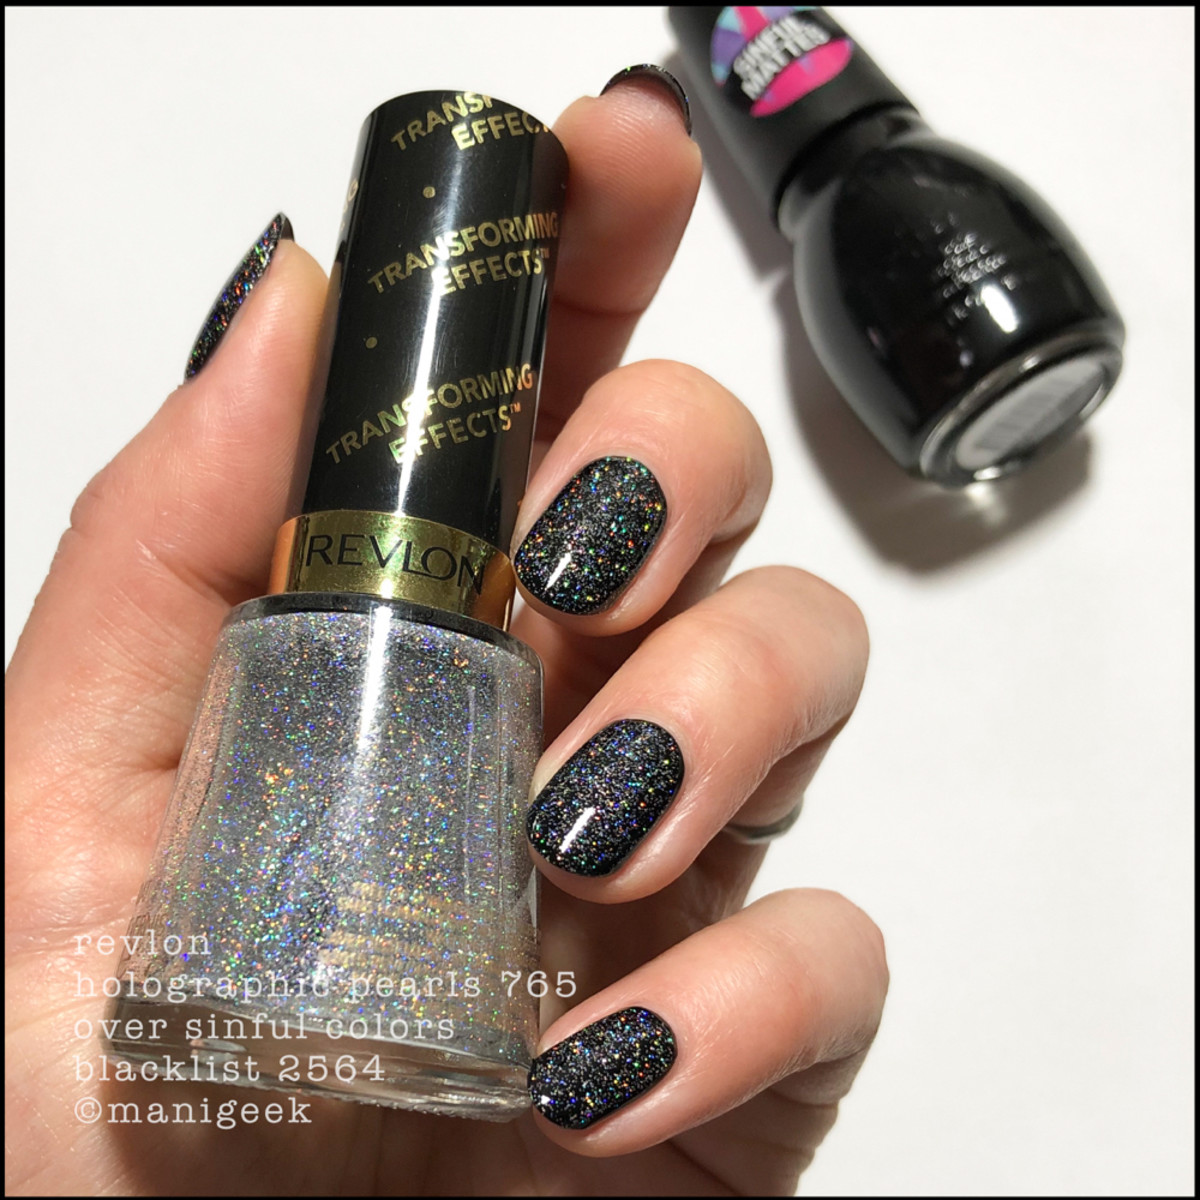 Sinful Colors Blacklist with Revlon Holographic Pearls _ Sinful Colors Swatches Matte Collection 2019